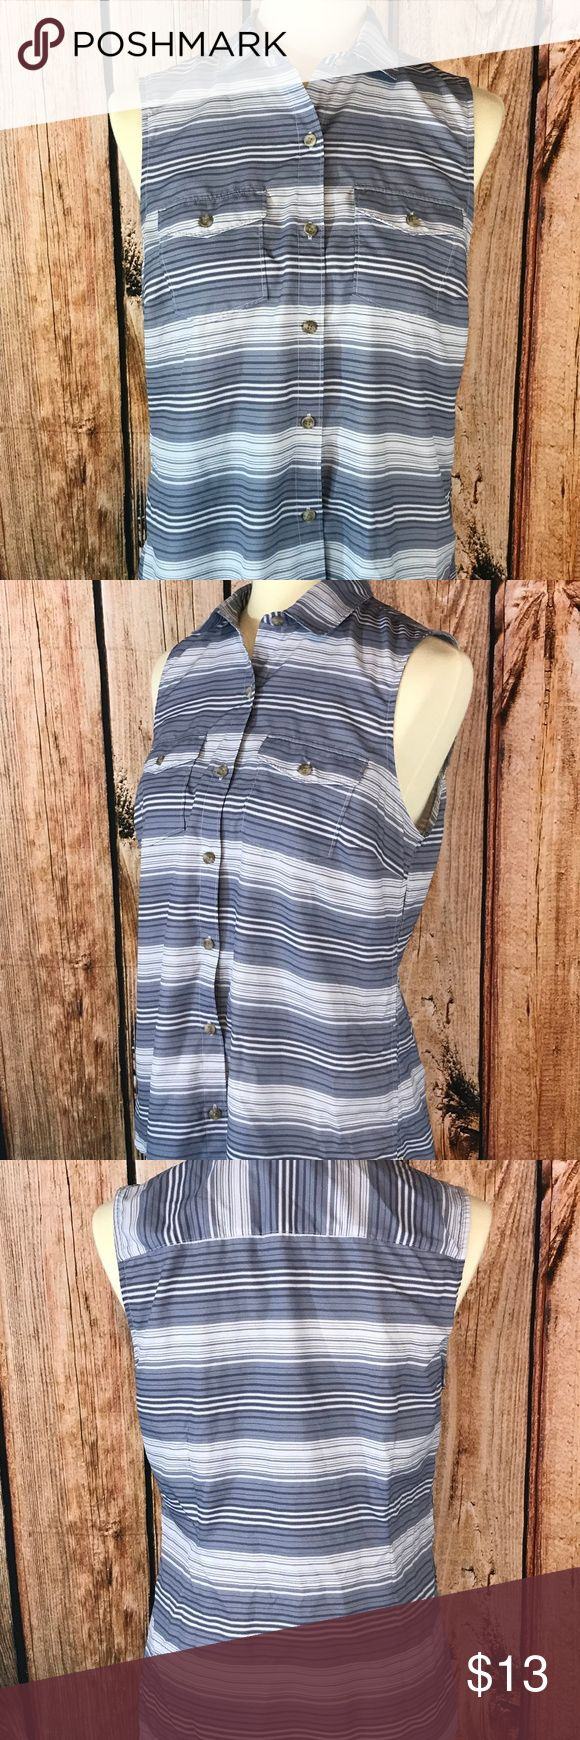 Eddie Bauer Womens Sleeveless Blouse Size Medium Eddie Bauer Womens Sleeveless Blouse Size Medium Blue White Stripe Vented Sides Size: Medium  Material: Polyester  Item is pre-owned.     Measurements Laying Flat:  Armpit to Armpit-19 inches  Length-25 inches        E7 Eddie Bauer Tops Blouses